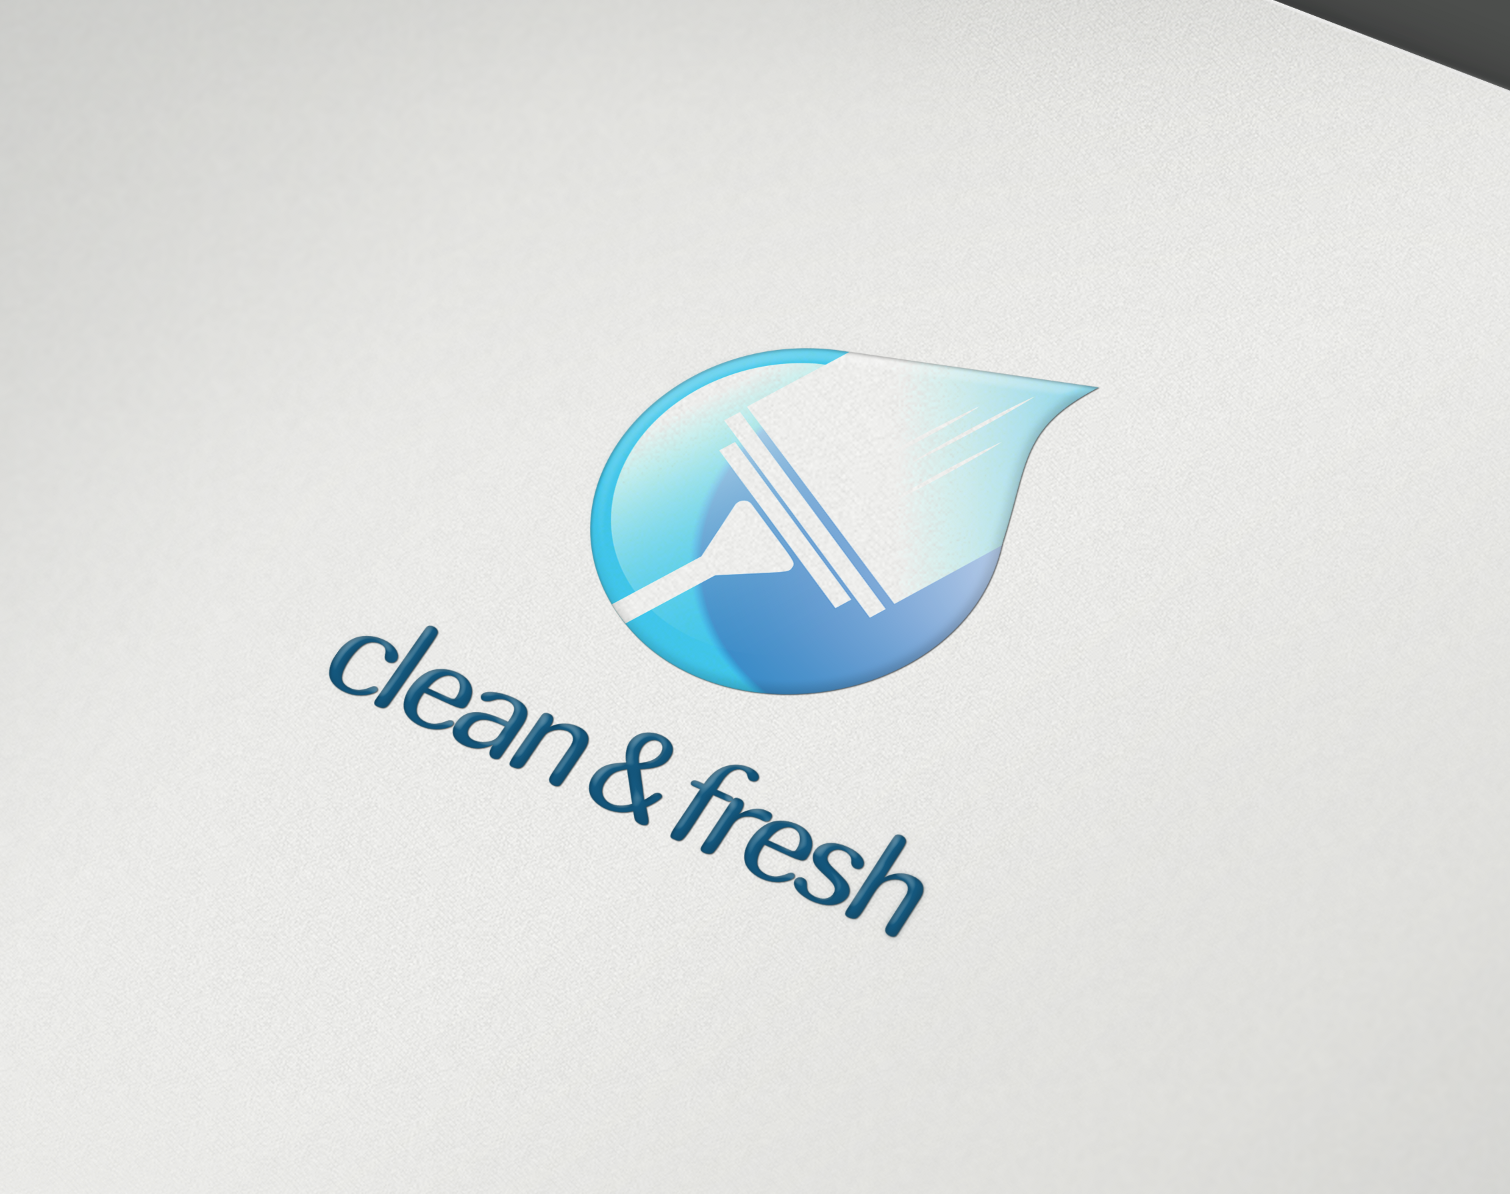 Exclusive Logo 71737 Clean And Fresh Logo Cleaning Company Logo Cleaning Company Names Cleaning Service Logo